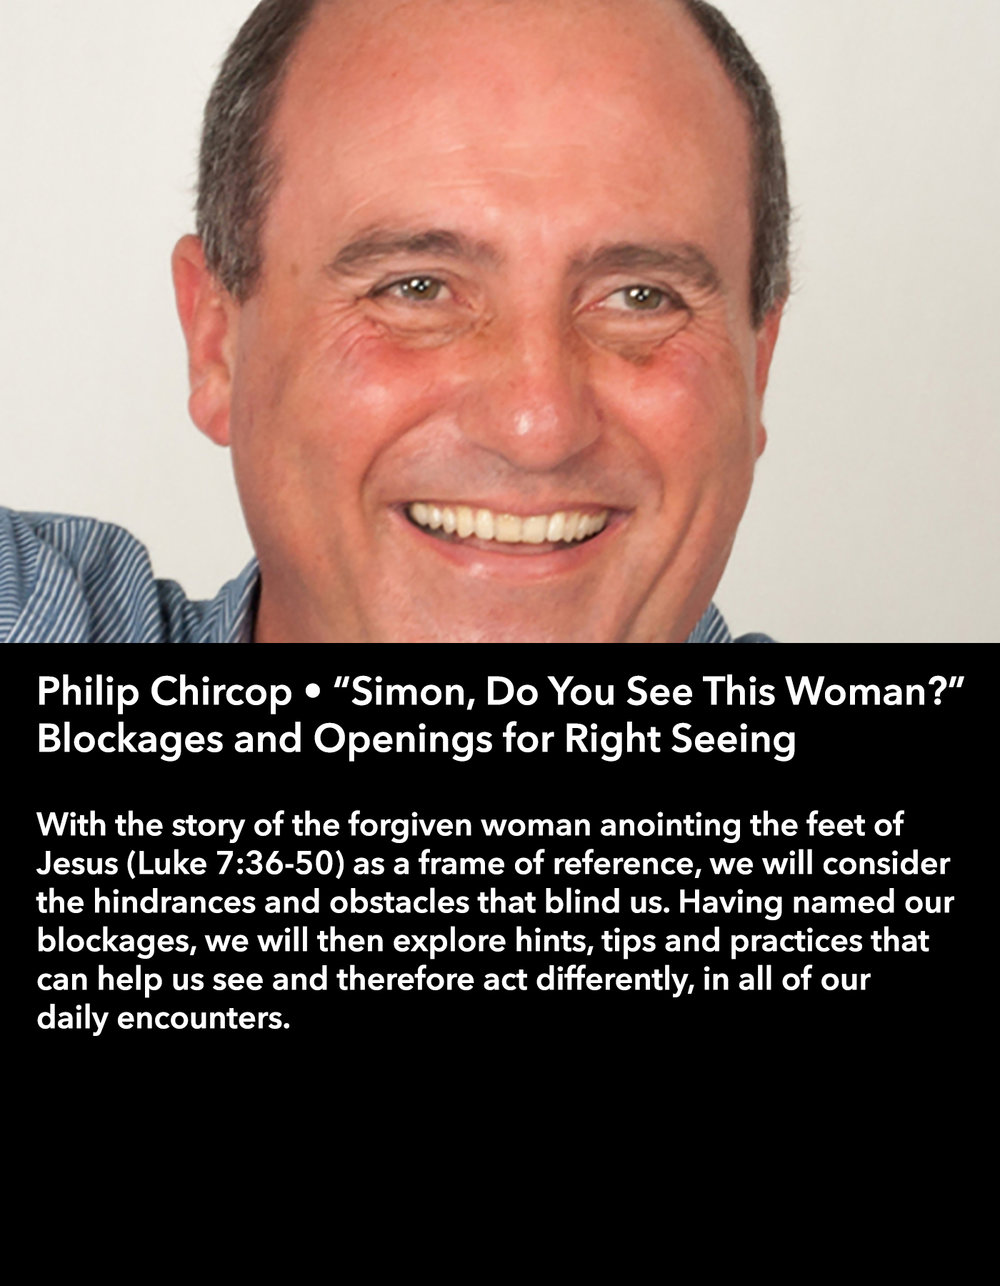 "Philip Chircop • ""Simon, Do You See This Woman?"" Blockages and Openings for Right Seeing • Friday Afternoon, March 17 • 3:30 – 4:45 pm"